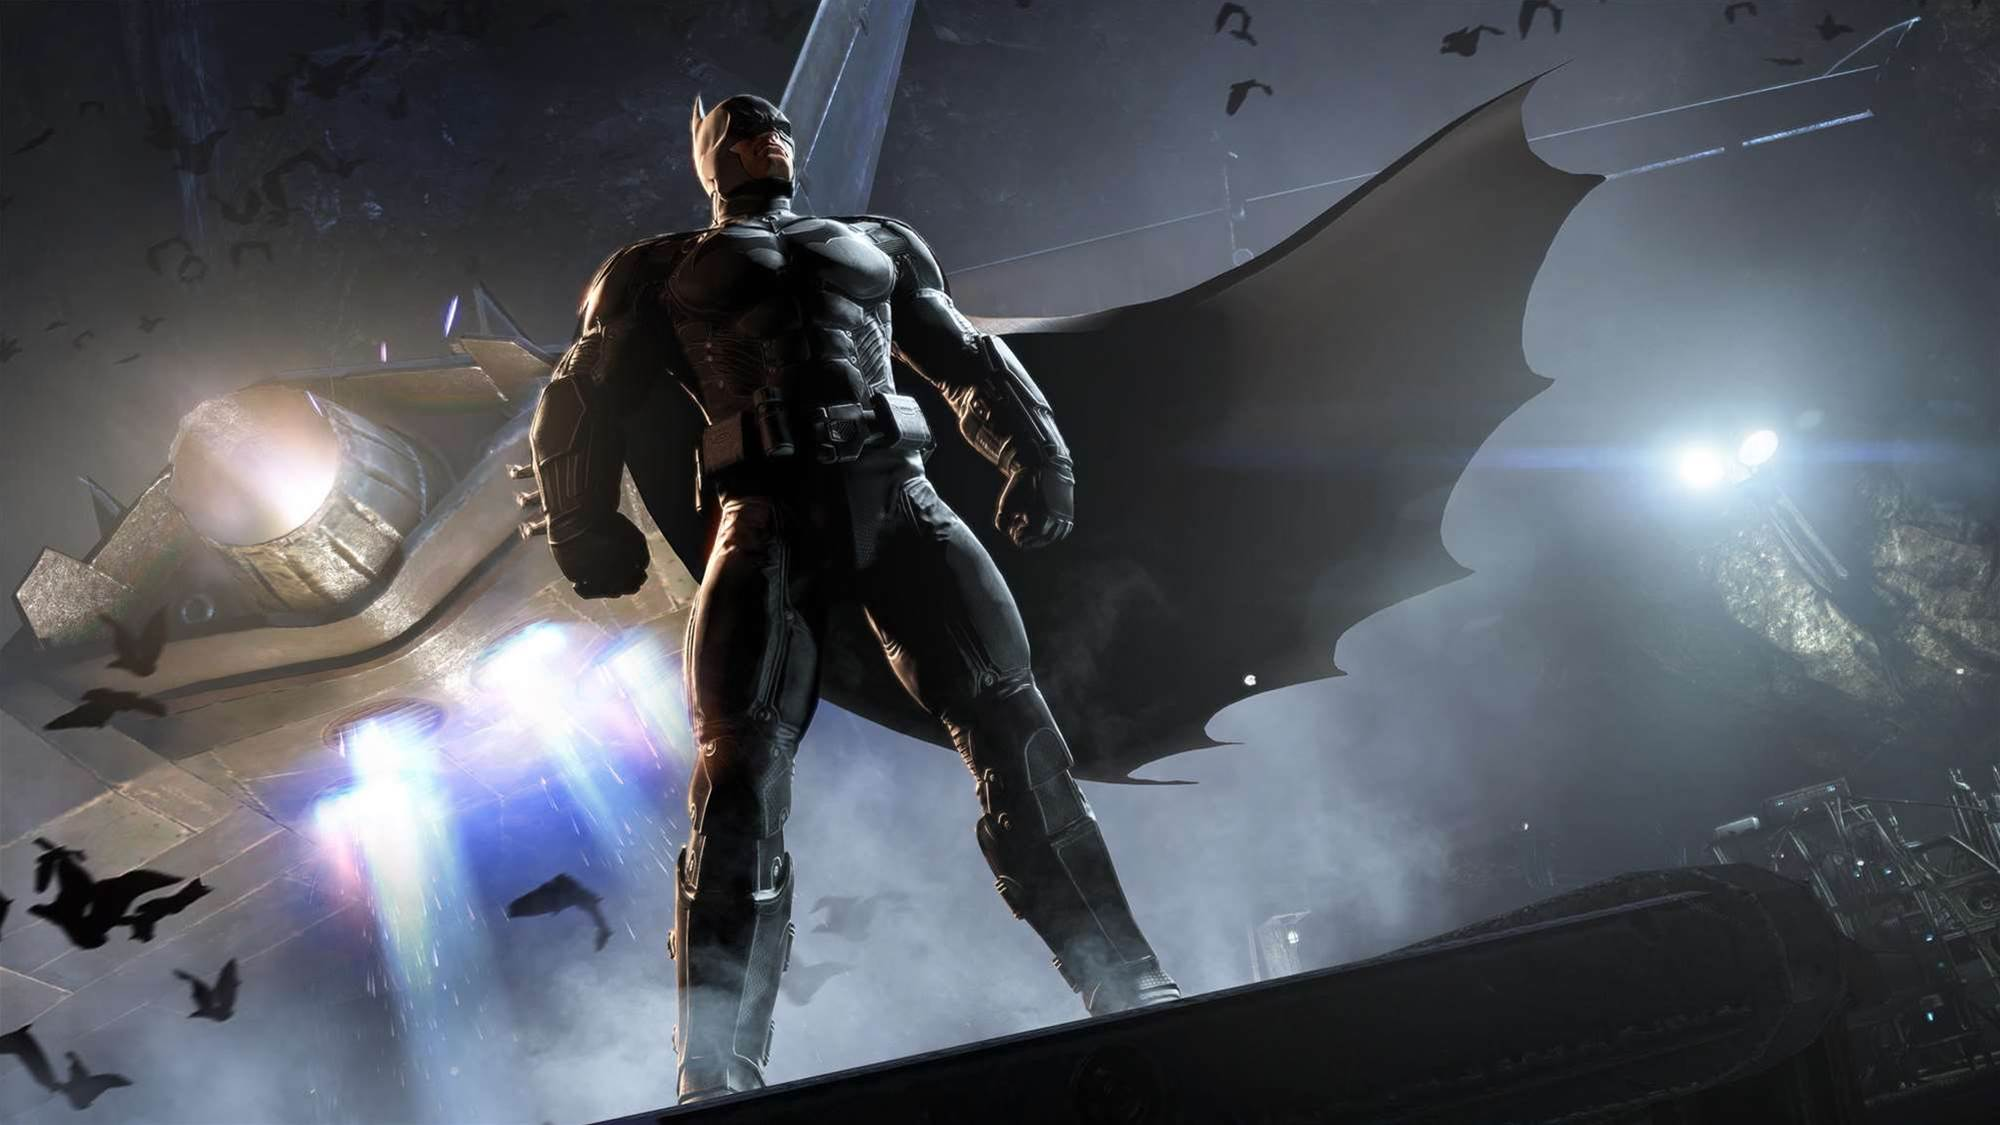 WB Games Montreal hints at more DC comics games